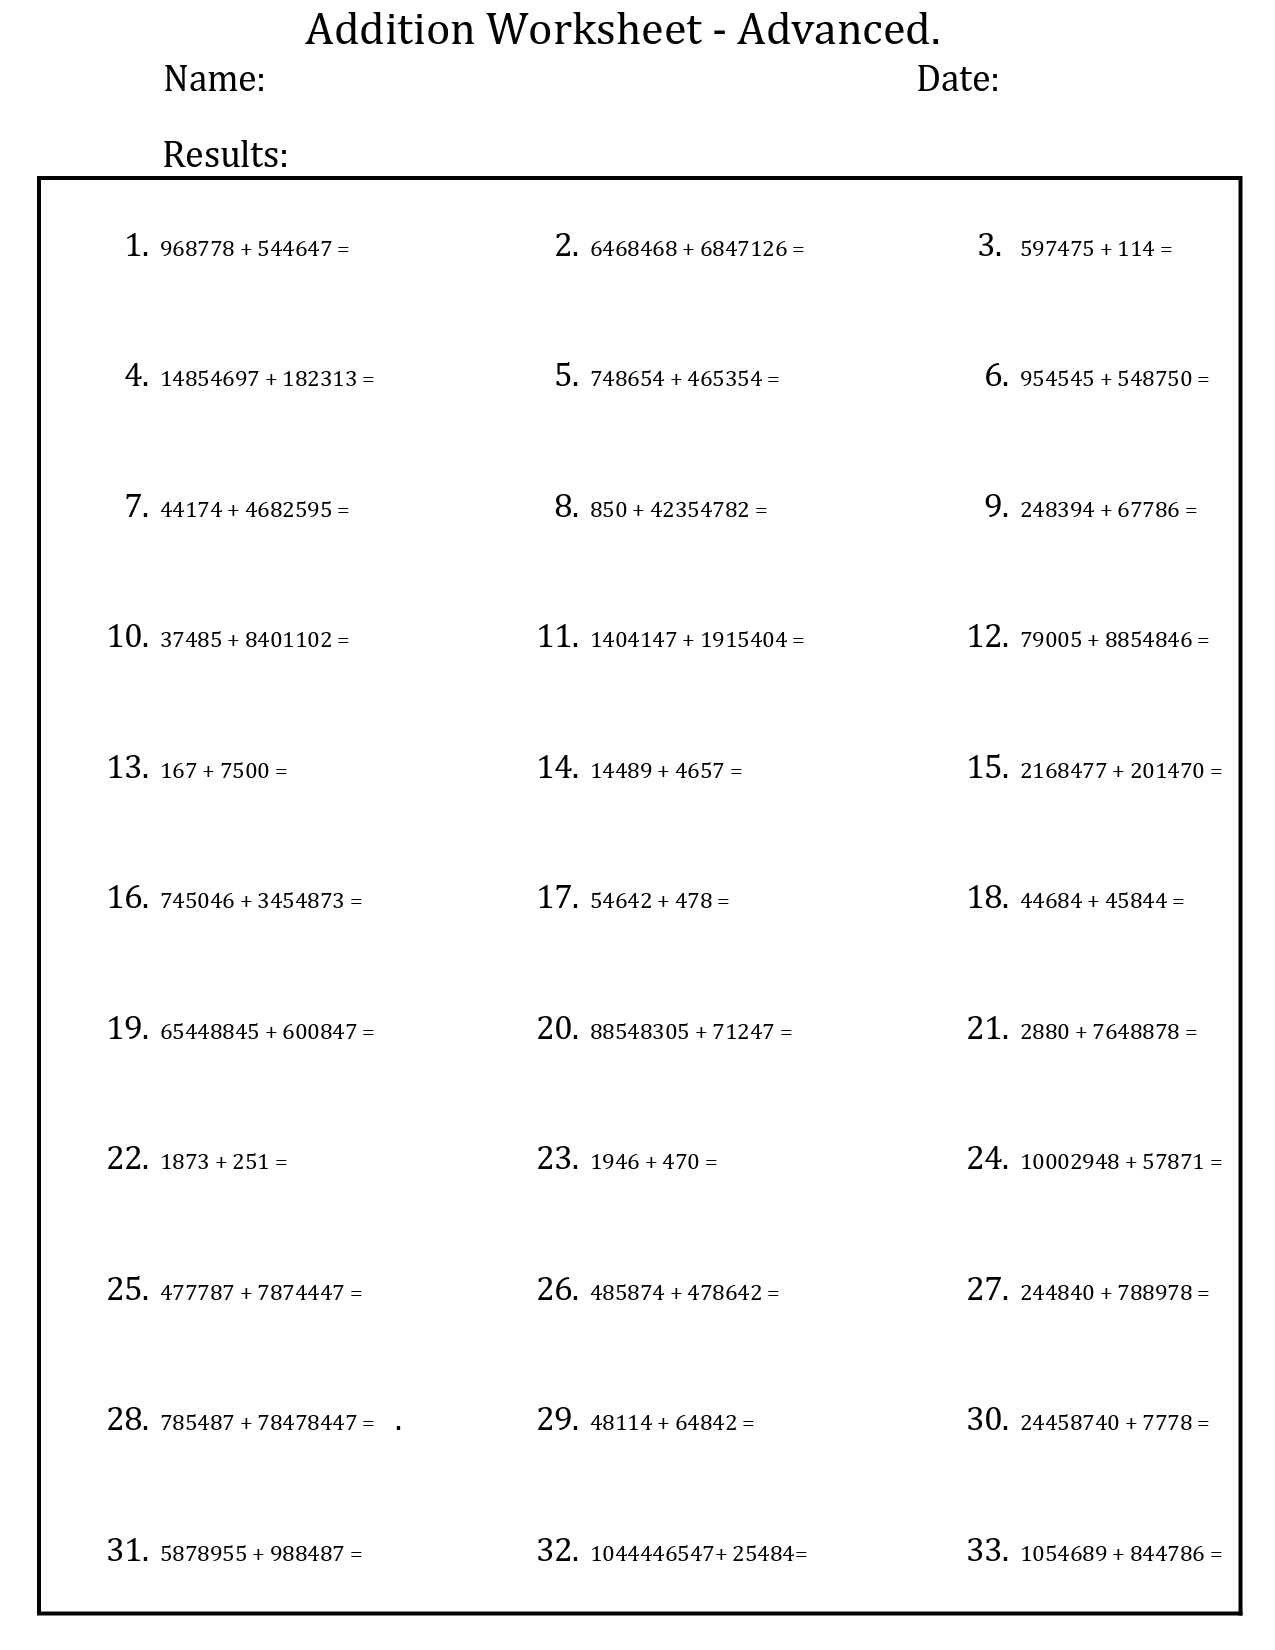 Printable Basic Addition Worksheets 1 20